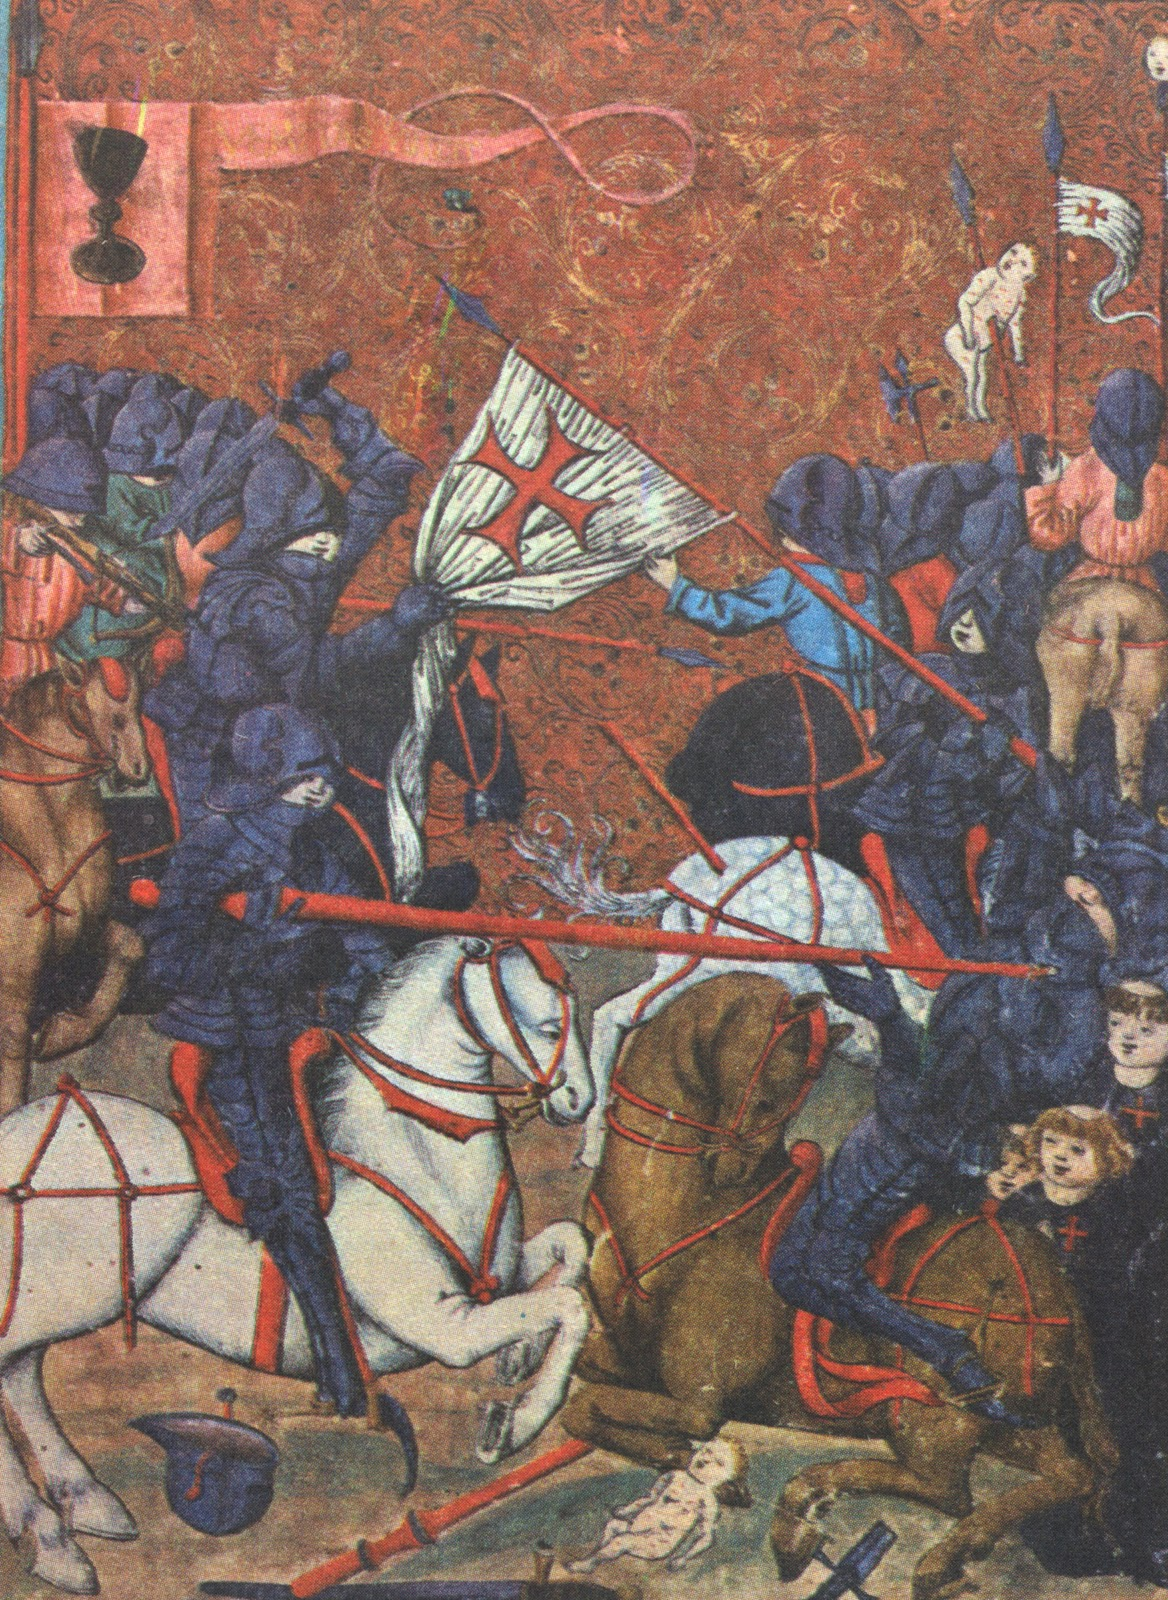 the crusades holy war of the christians The crusades is the name given to a series of military campaigns during the middle ages in which christian armies from europe waged war against the muslim turks of the holy land (now israel.